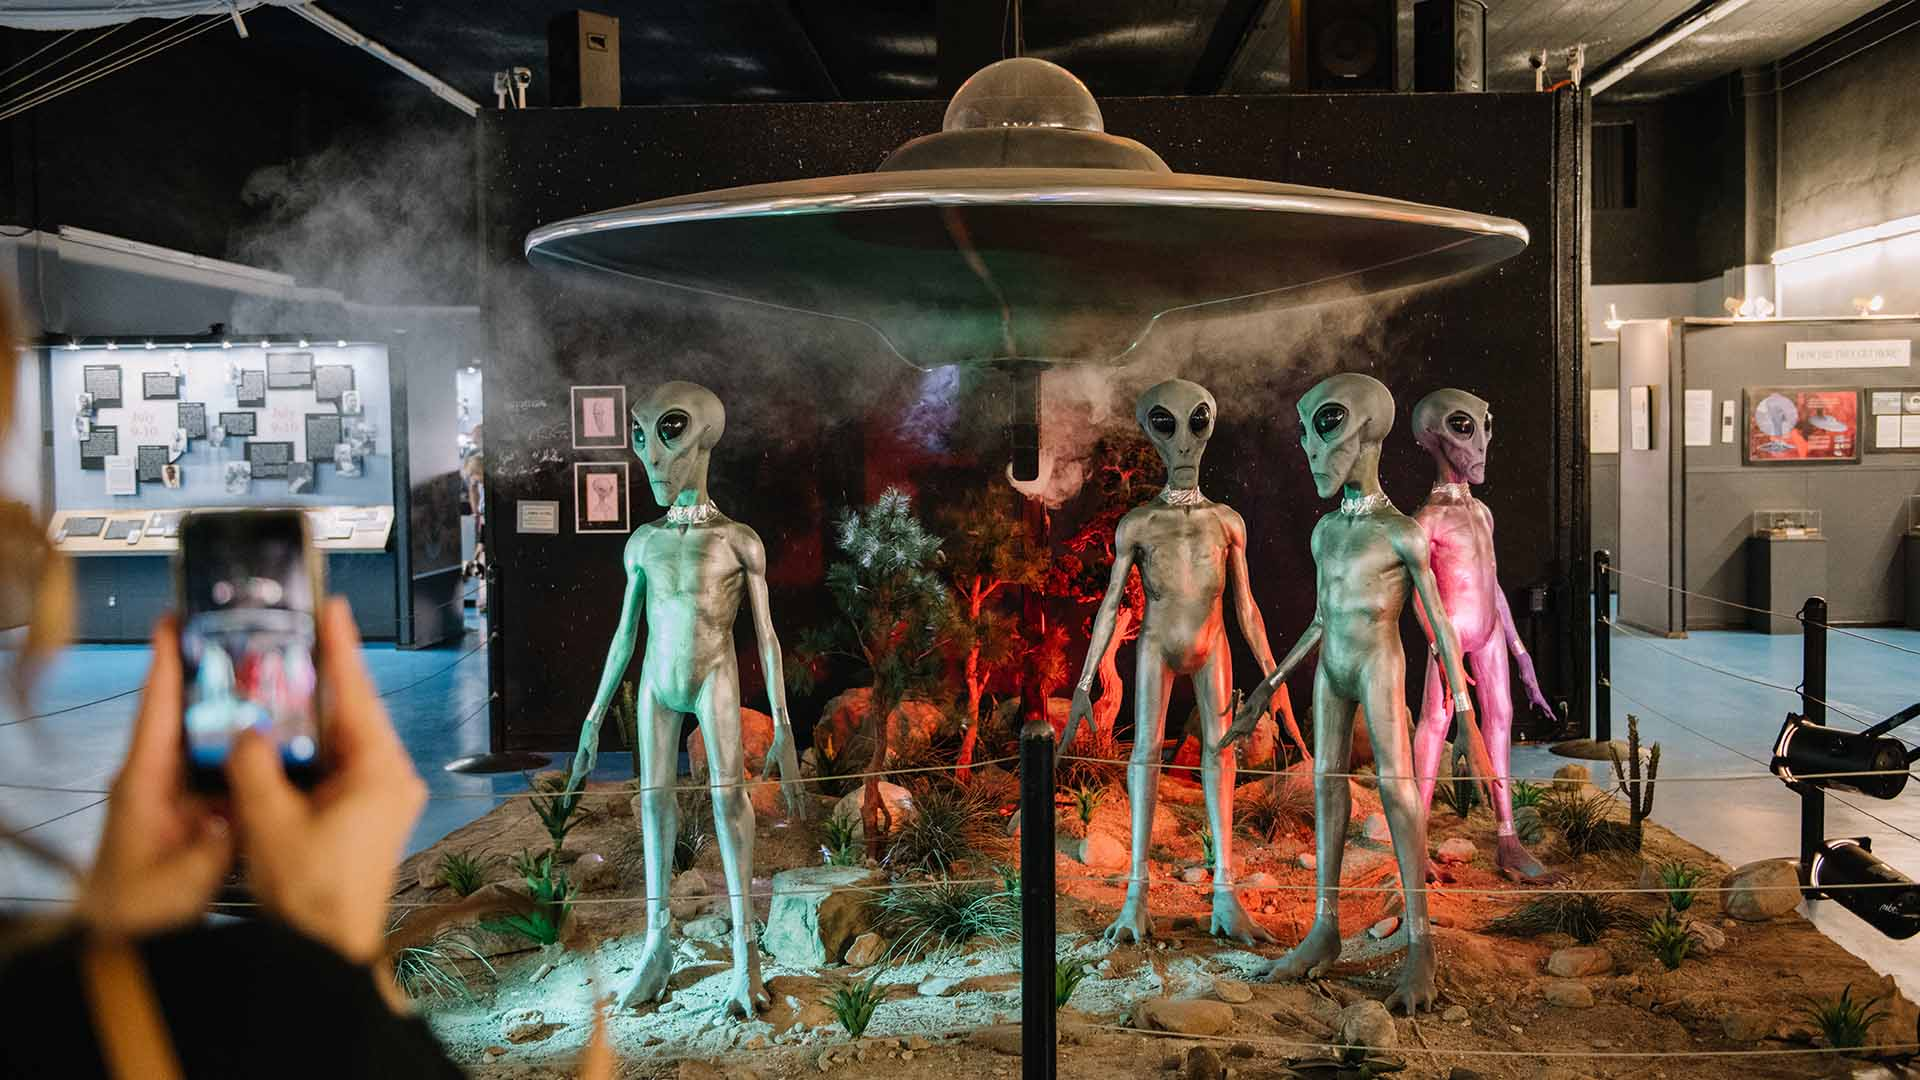 Animatronic aliens are on display at the International UFO Museum in Roswell, New Mexico.